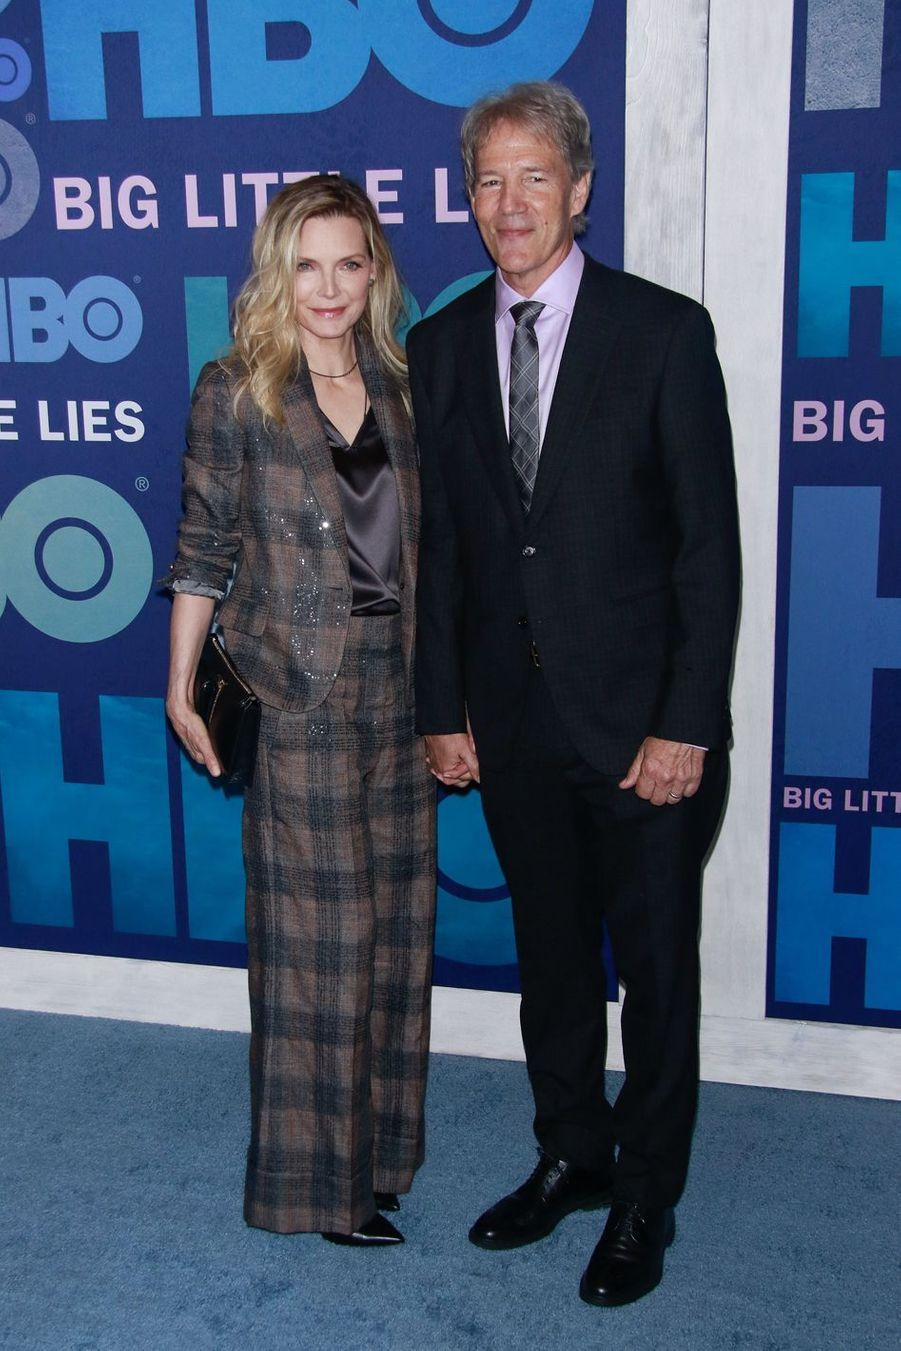 Michelle Pfeiffer et David Edward Kelley lors de la première de la saison 2 de «Big Little Lies» à New York le 29 mai 2019